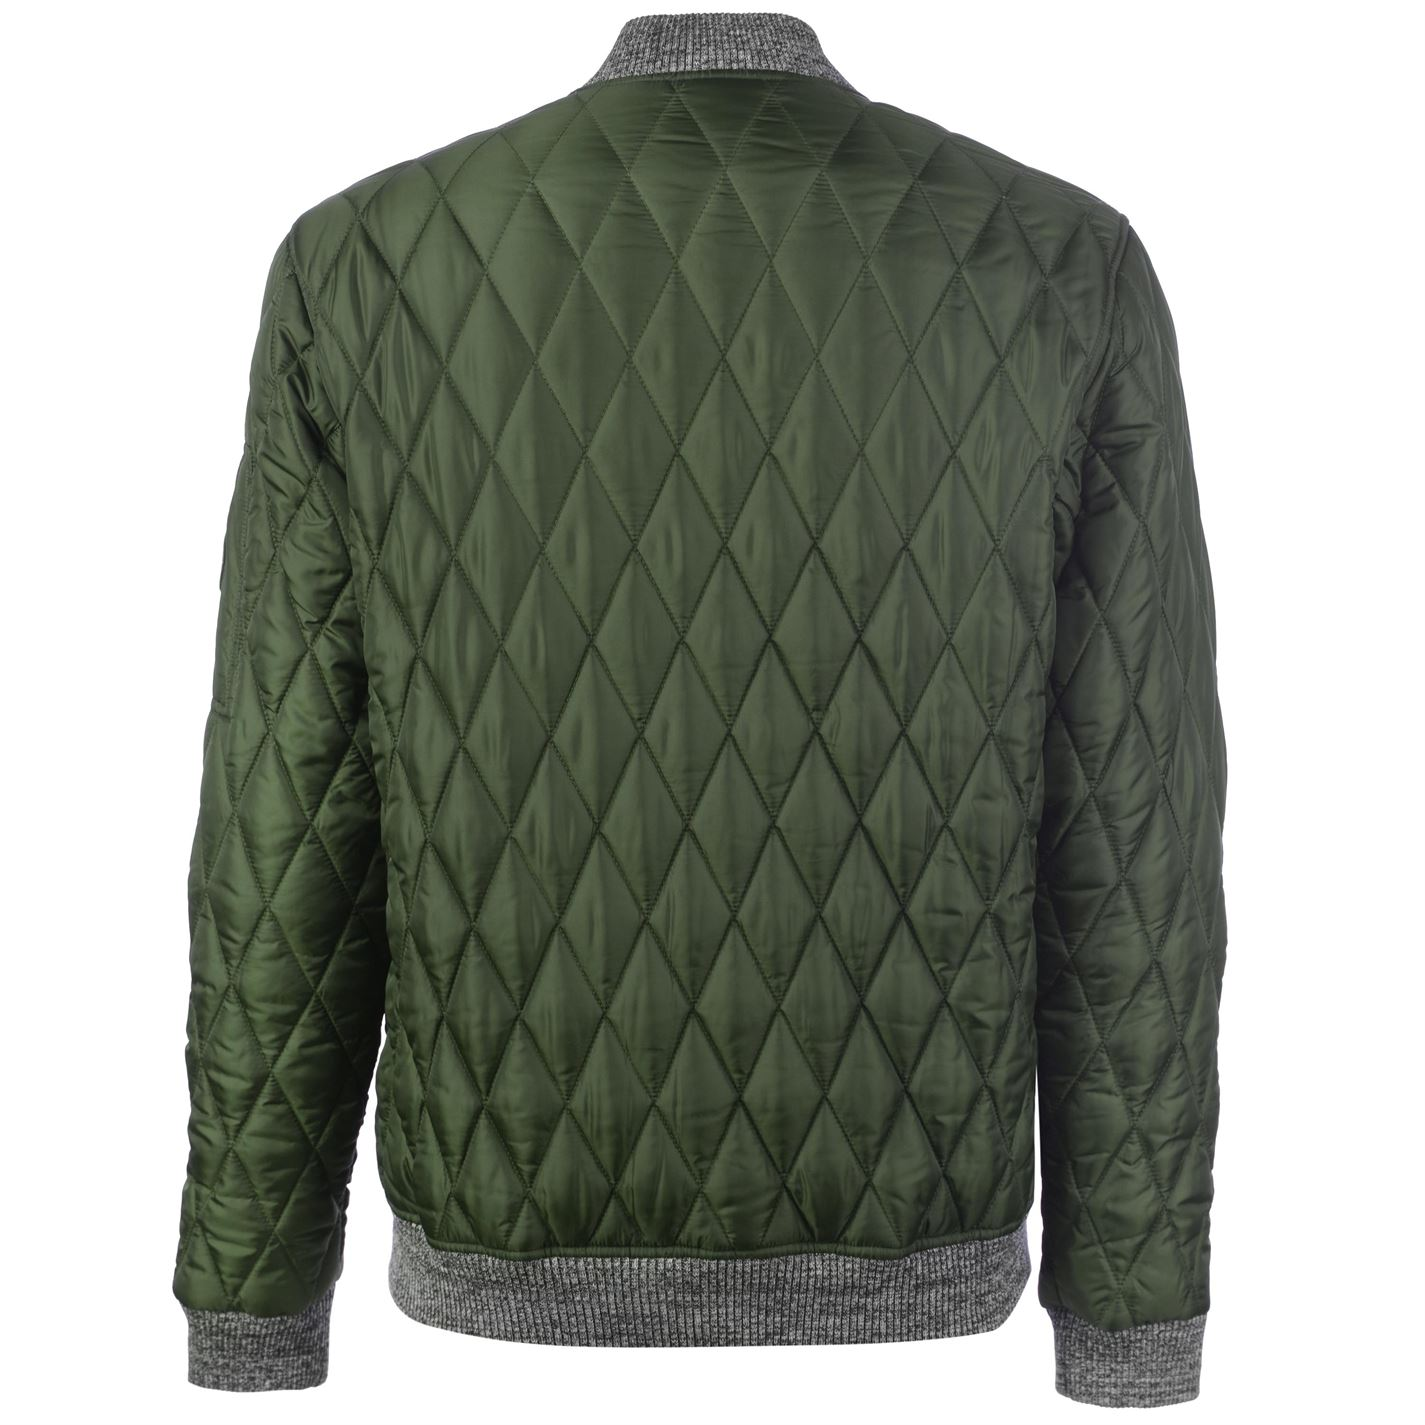 No-Fear-Quilted-Bomber-Jacket-Mens-Gents-Coat-Top-Full-Length-Sleeve-Zip-Zipped thumbnail 14